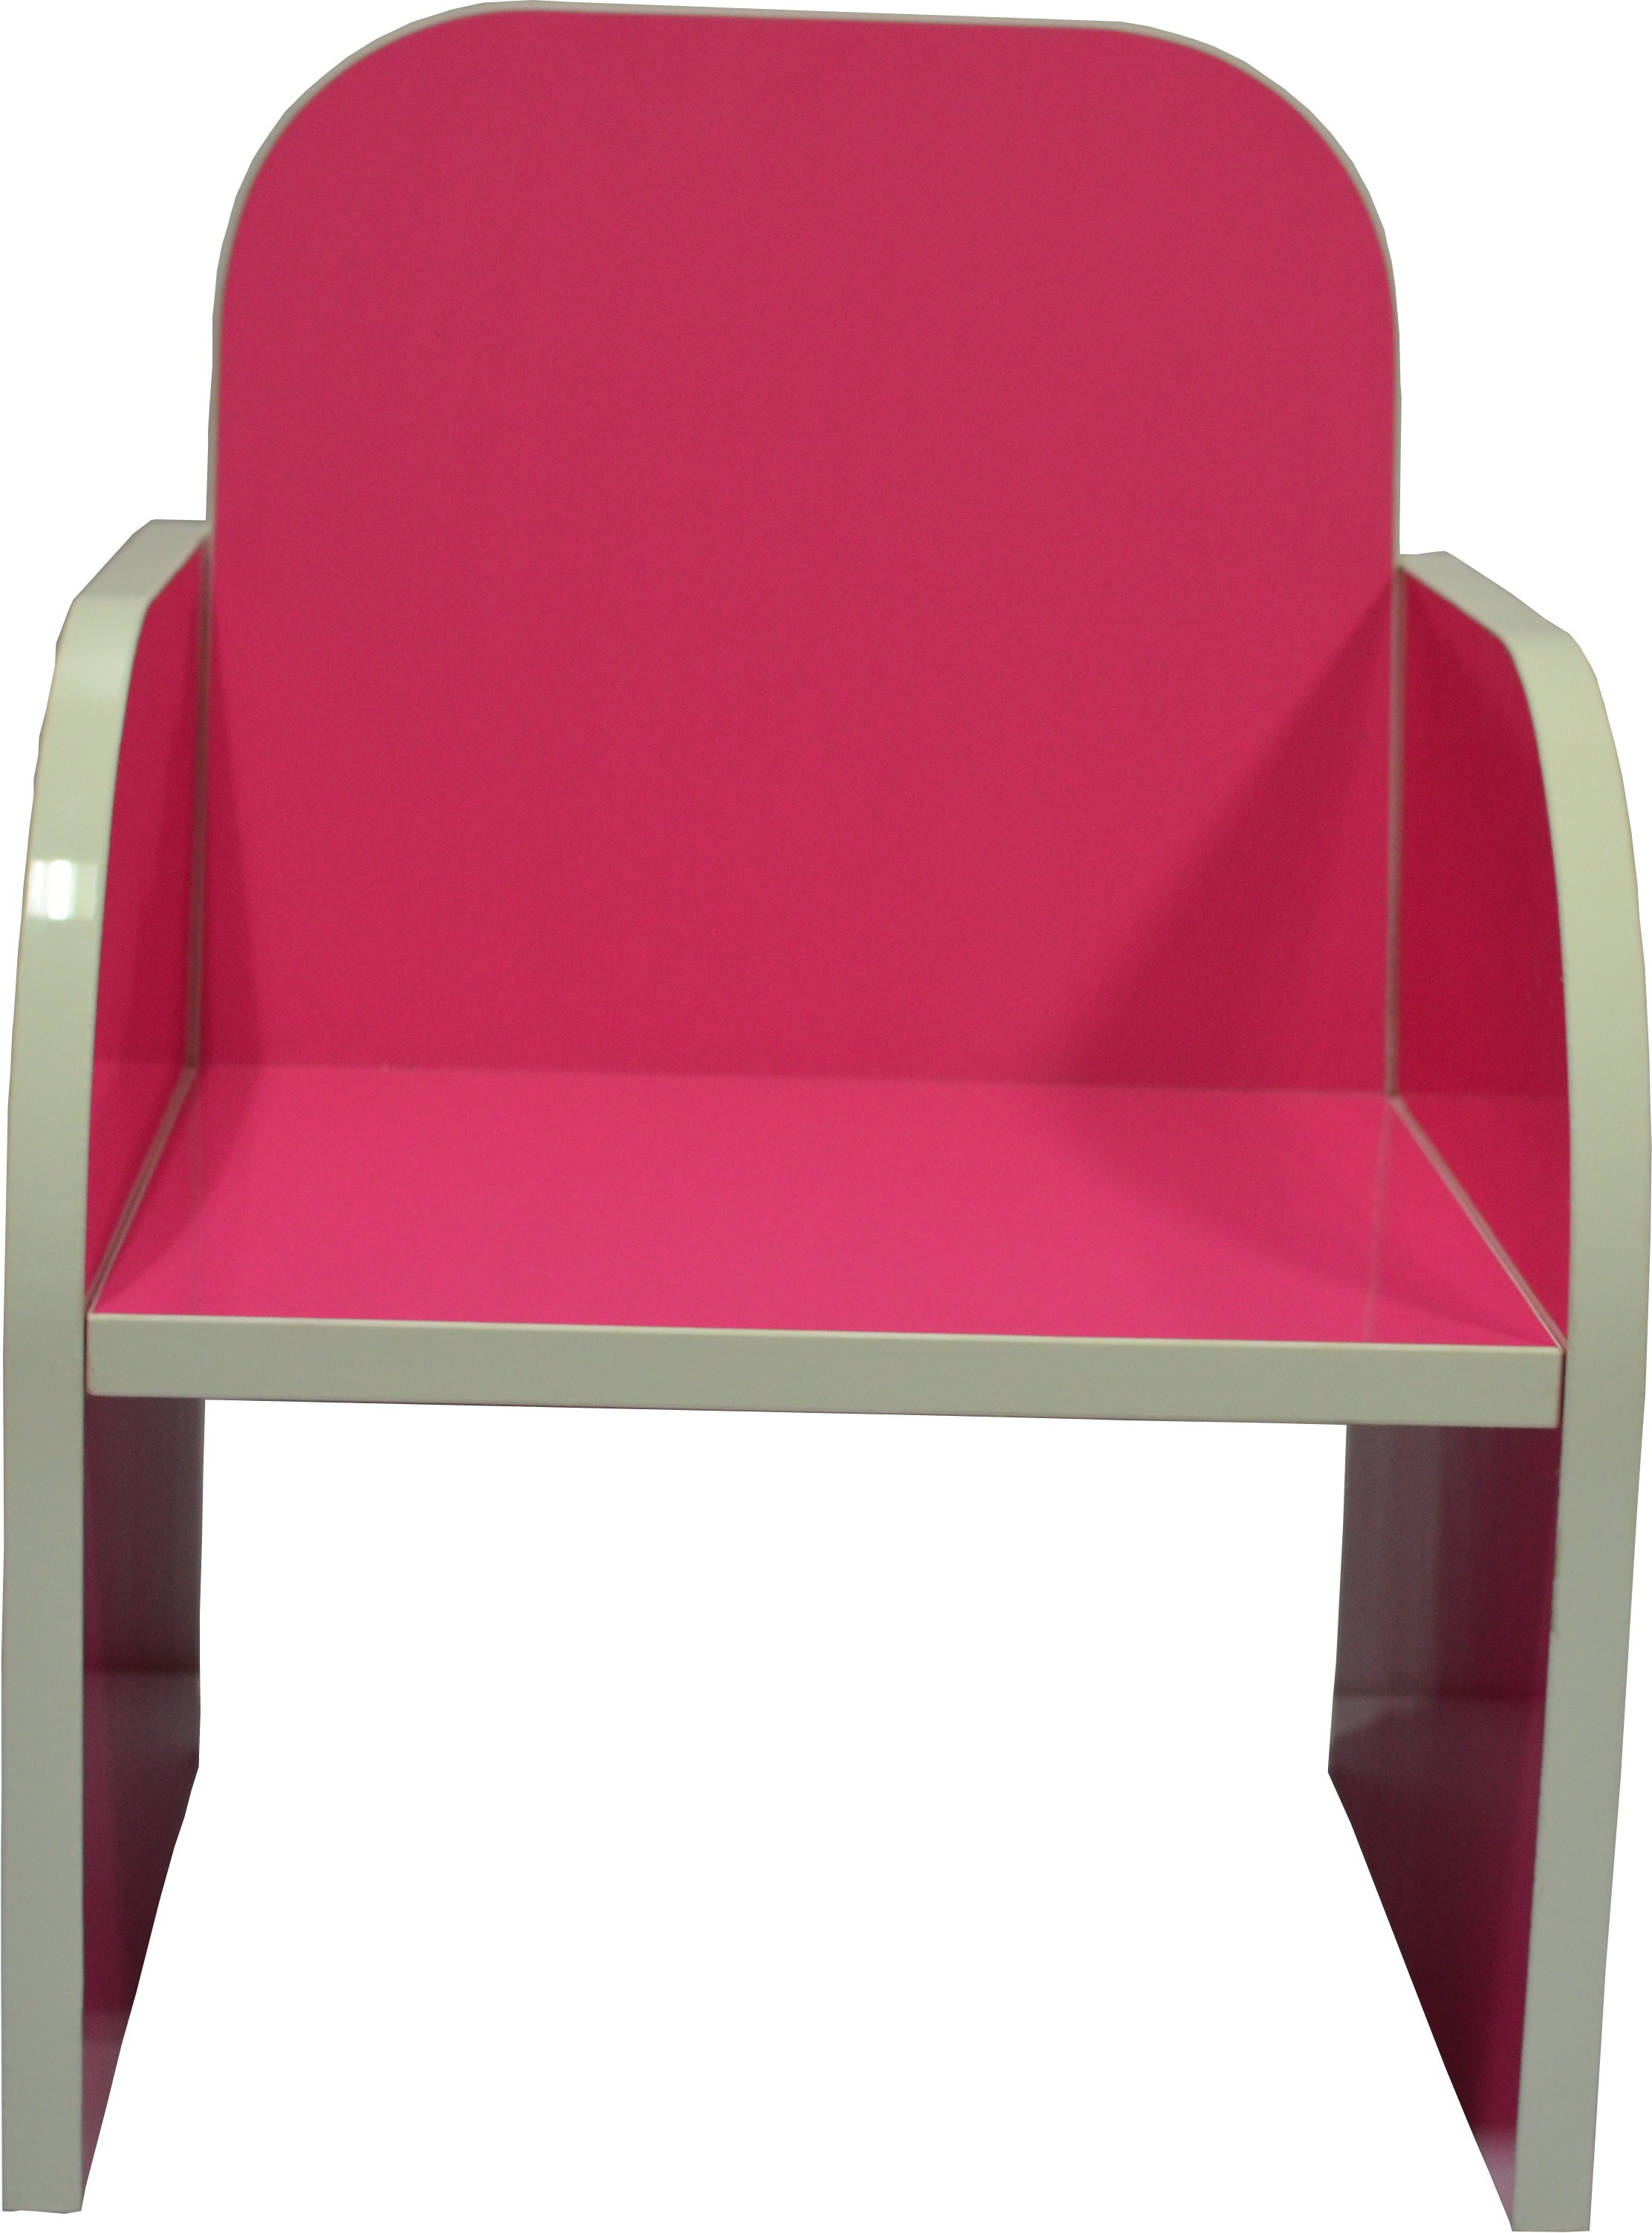 View VFine Modulars Engineered Wood Chair(Finish Color - Pink) Furniture (VFine Modulars)